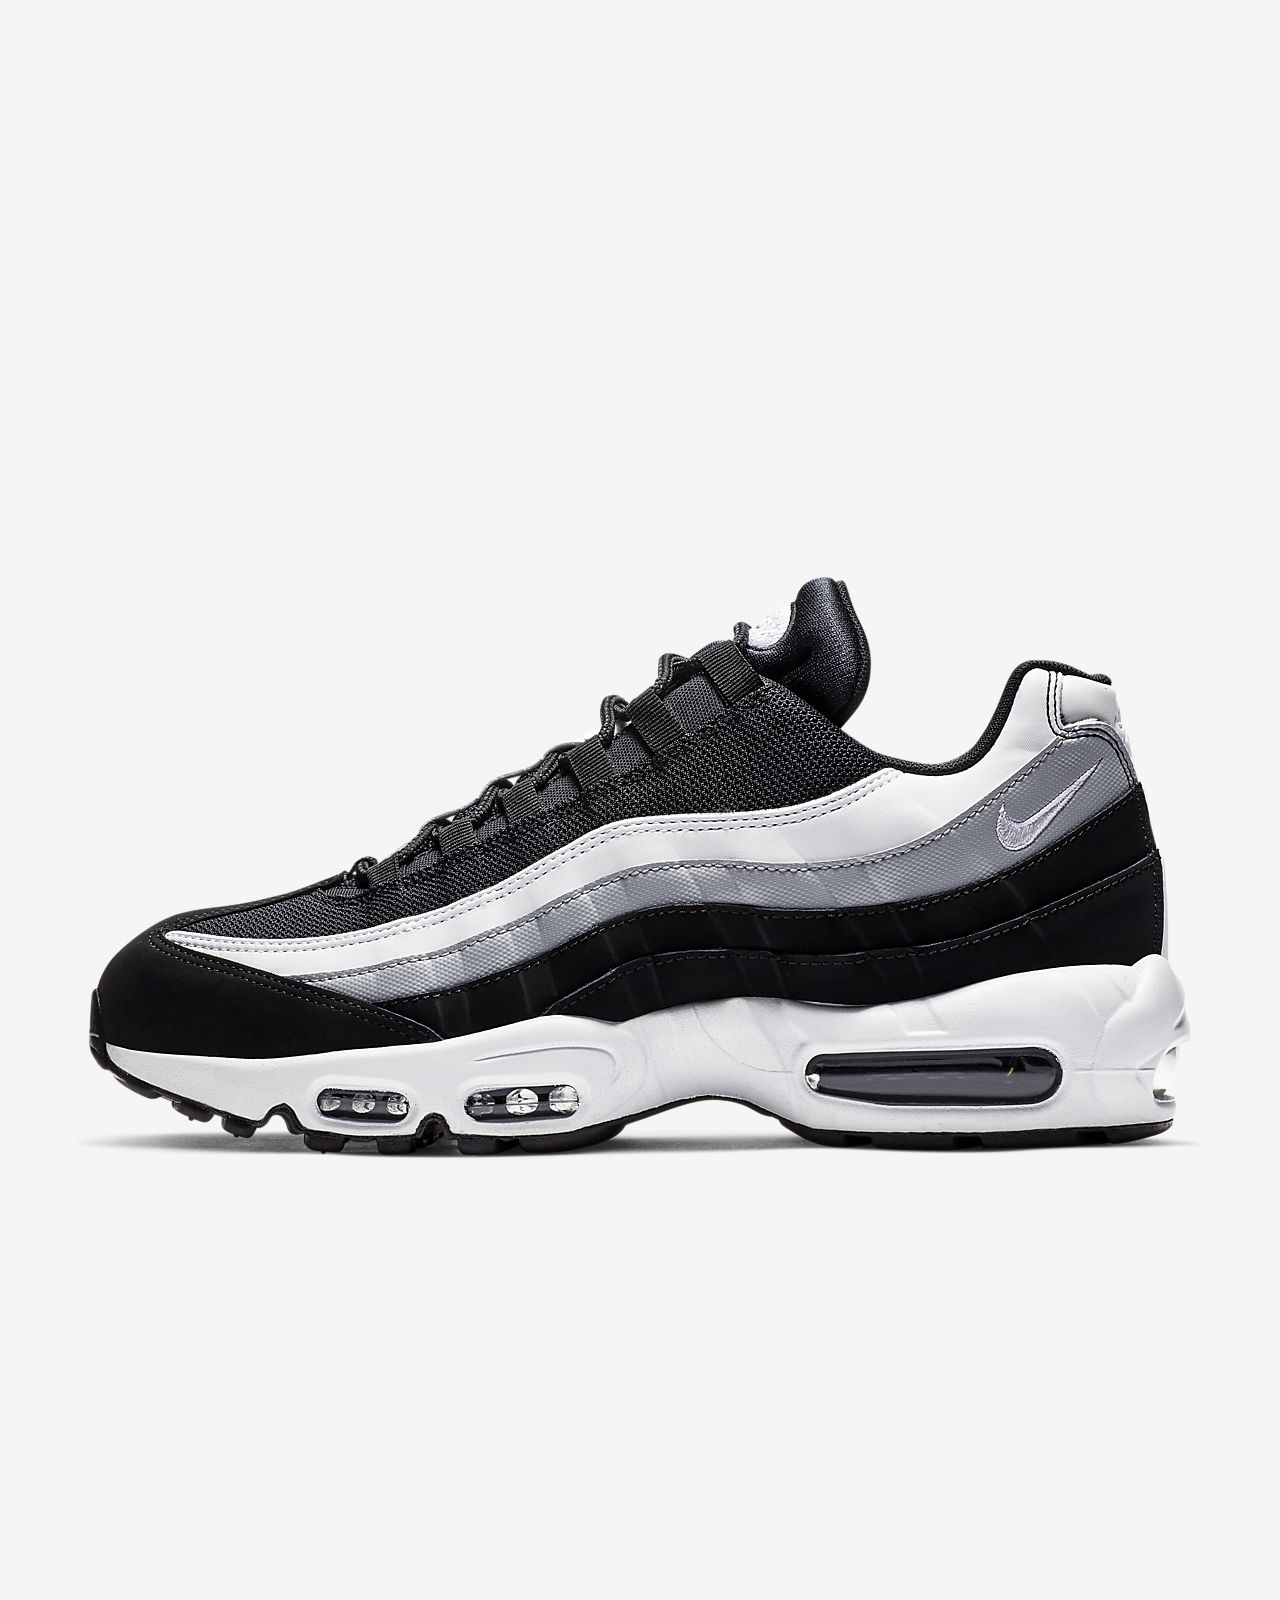 official photos f29f8 d7332 Nike Air Max 95 Essential